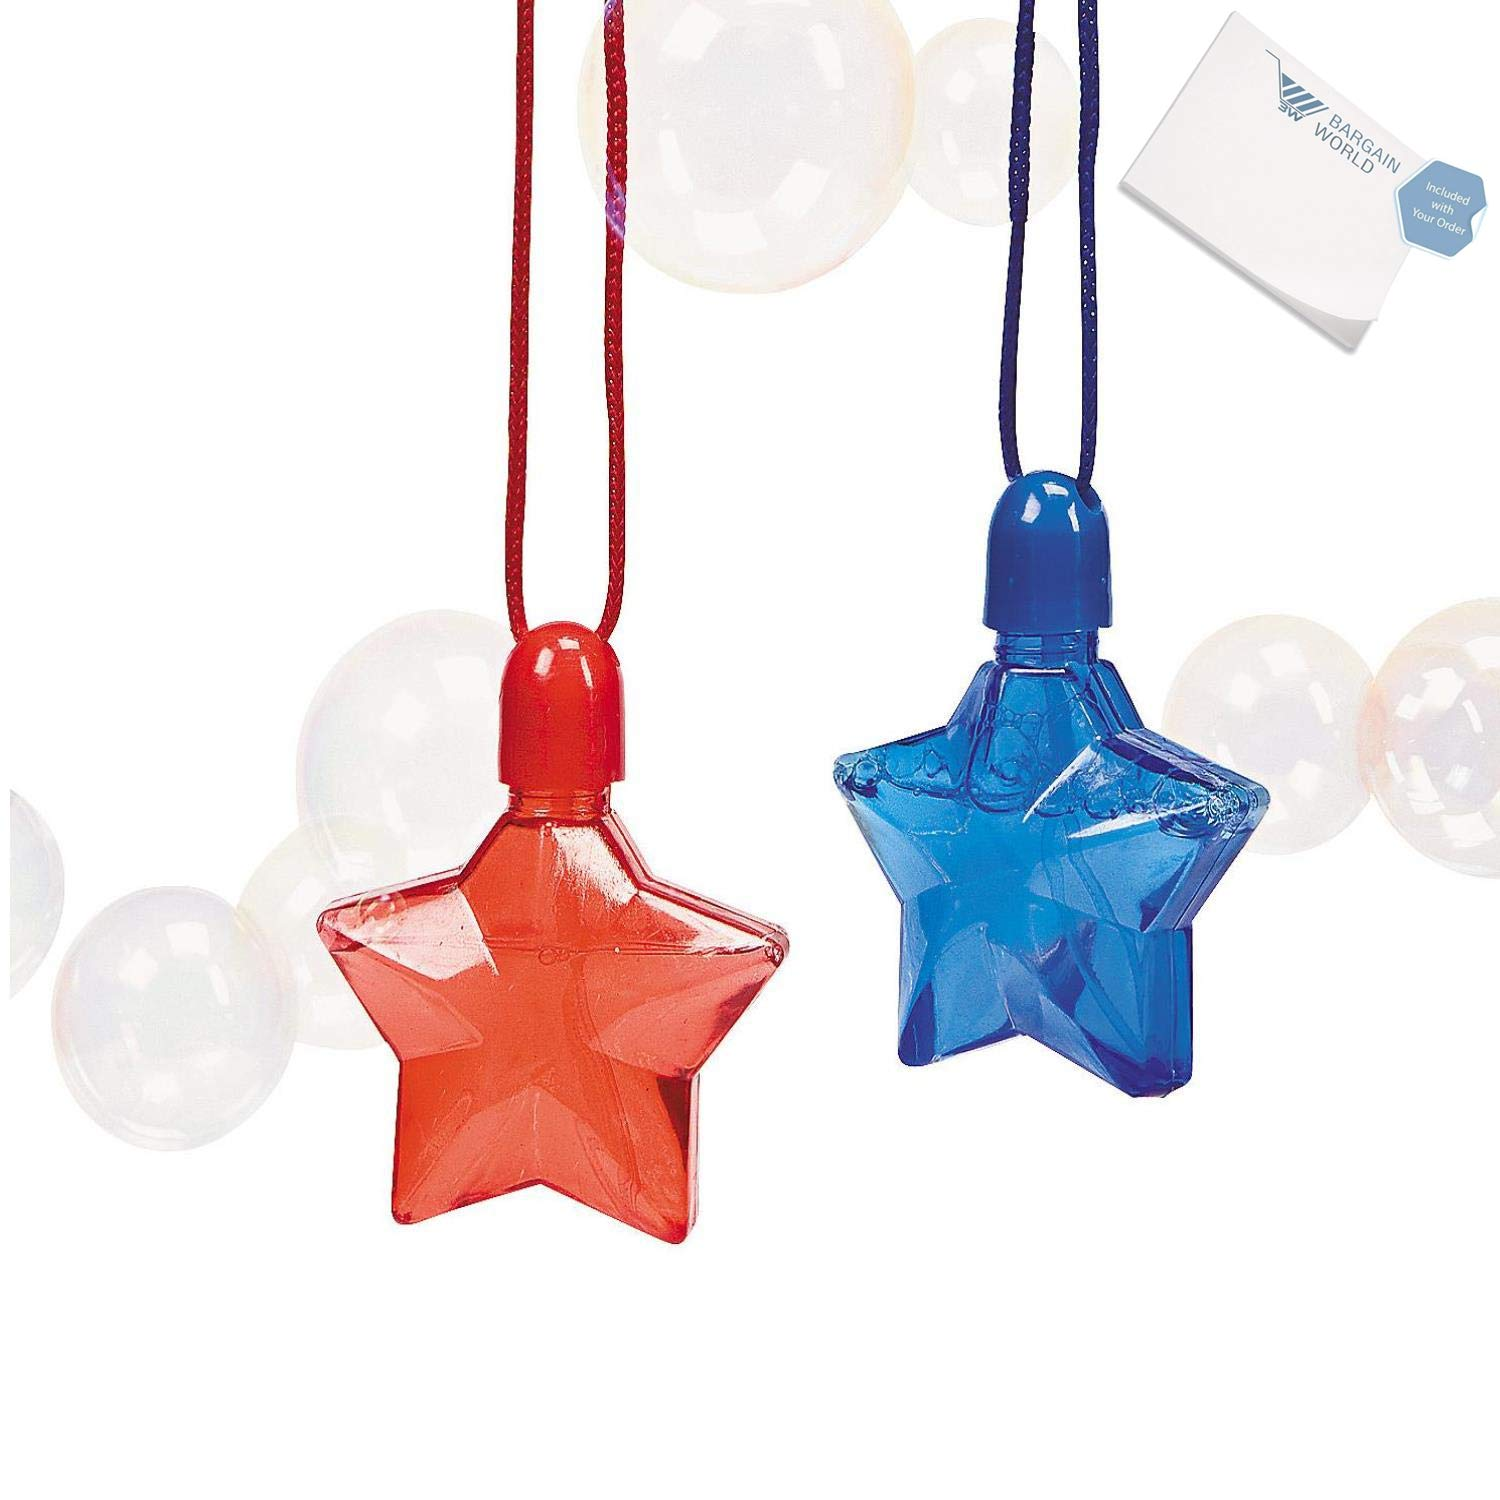 Bargain World Plastic Star-Shaped Bubble Bottle Necklaces (With Sticky Notes) by Bargain World (Image #1)